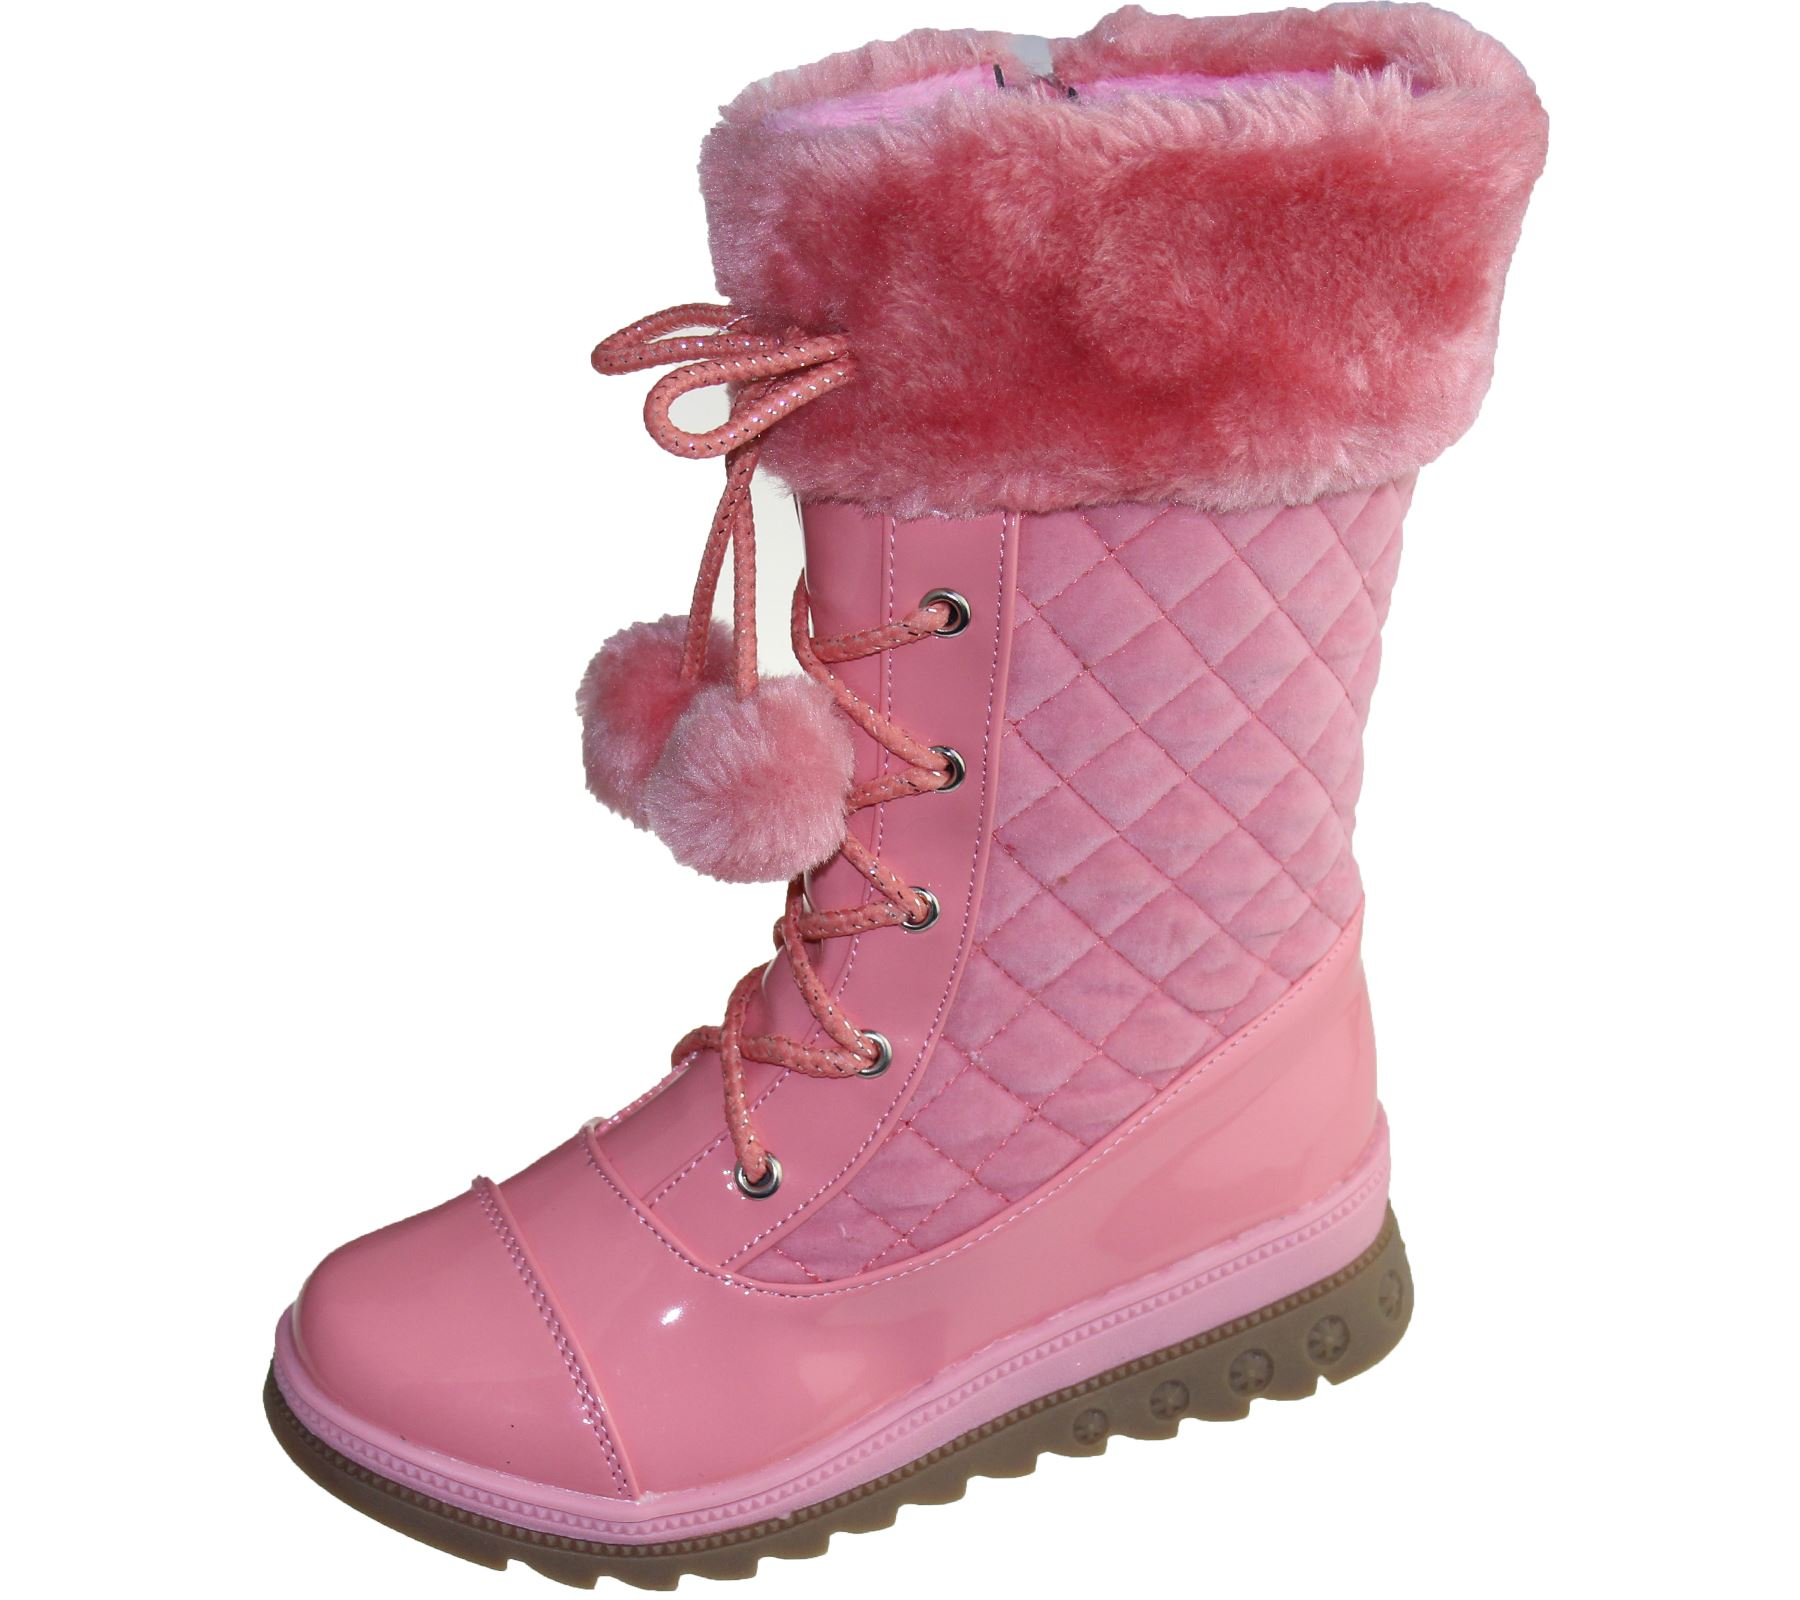 Girls Warm Linned Boots Pom Pom Winter Christmas High Top Quilted Ankle Shoes